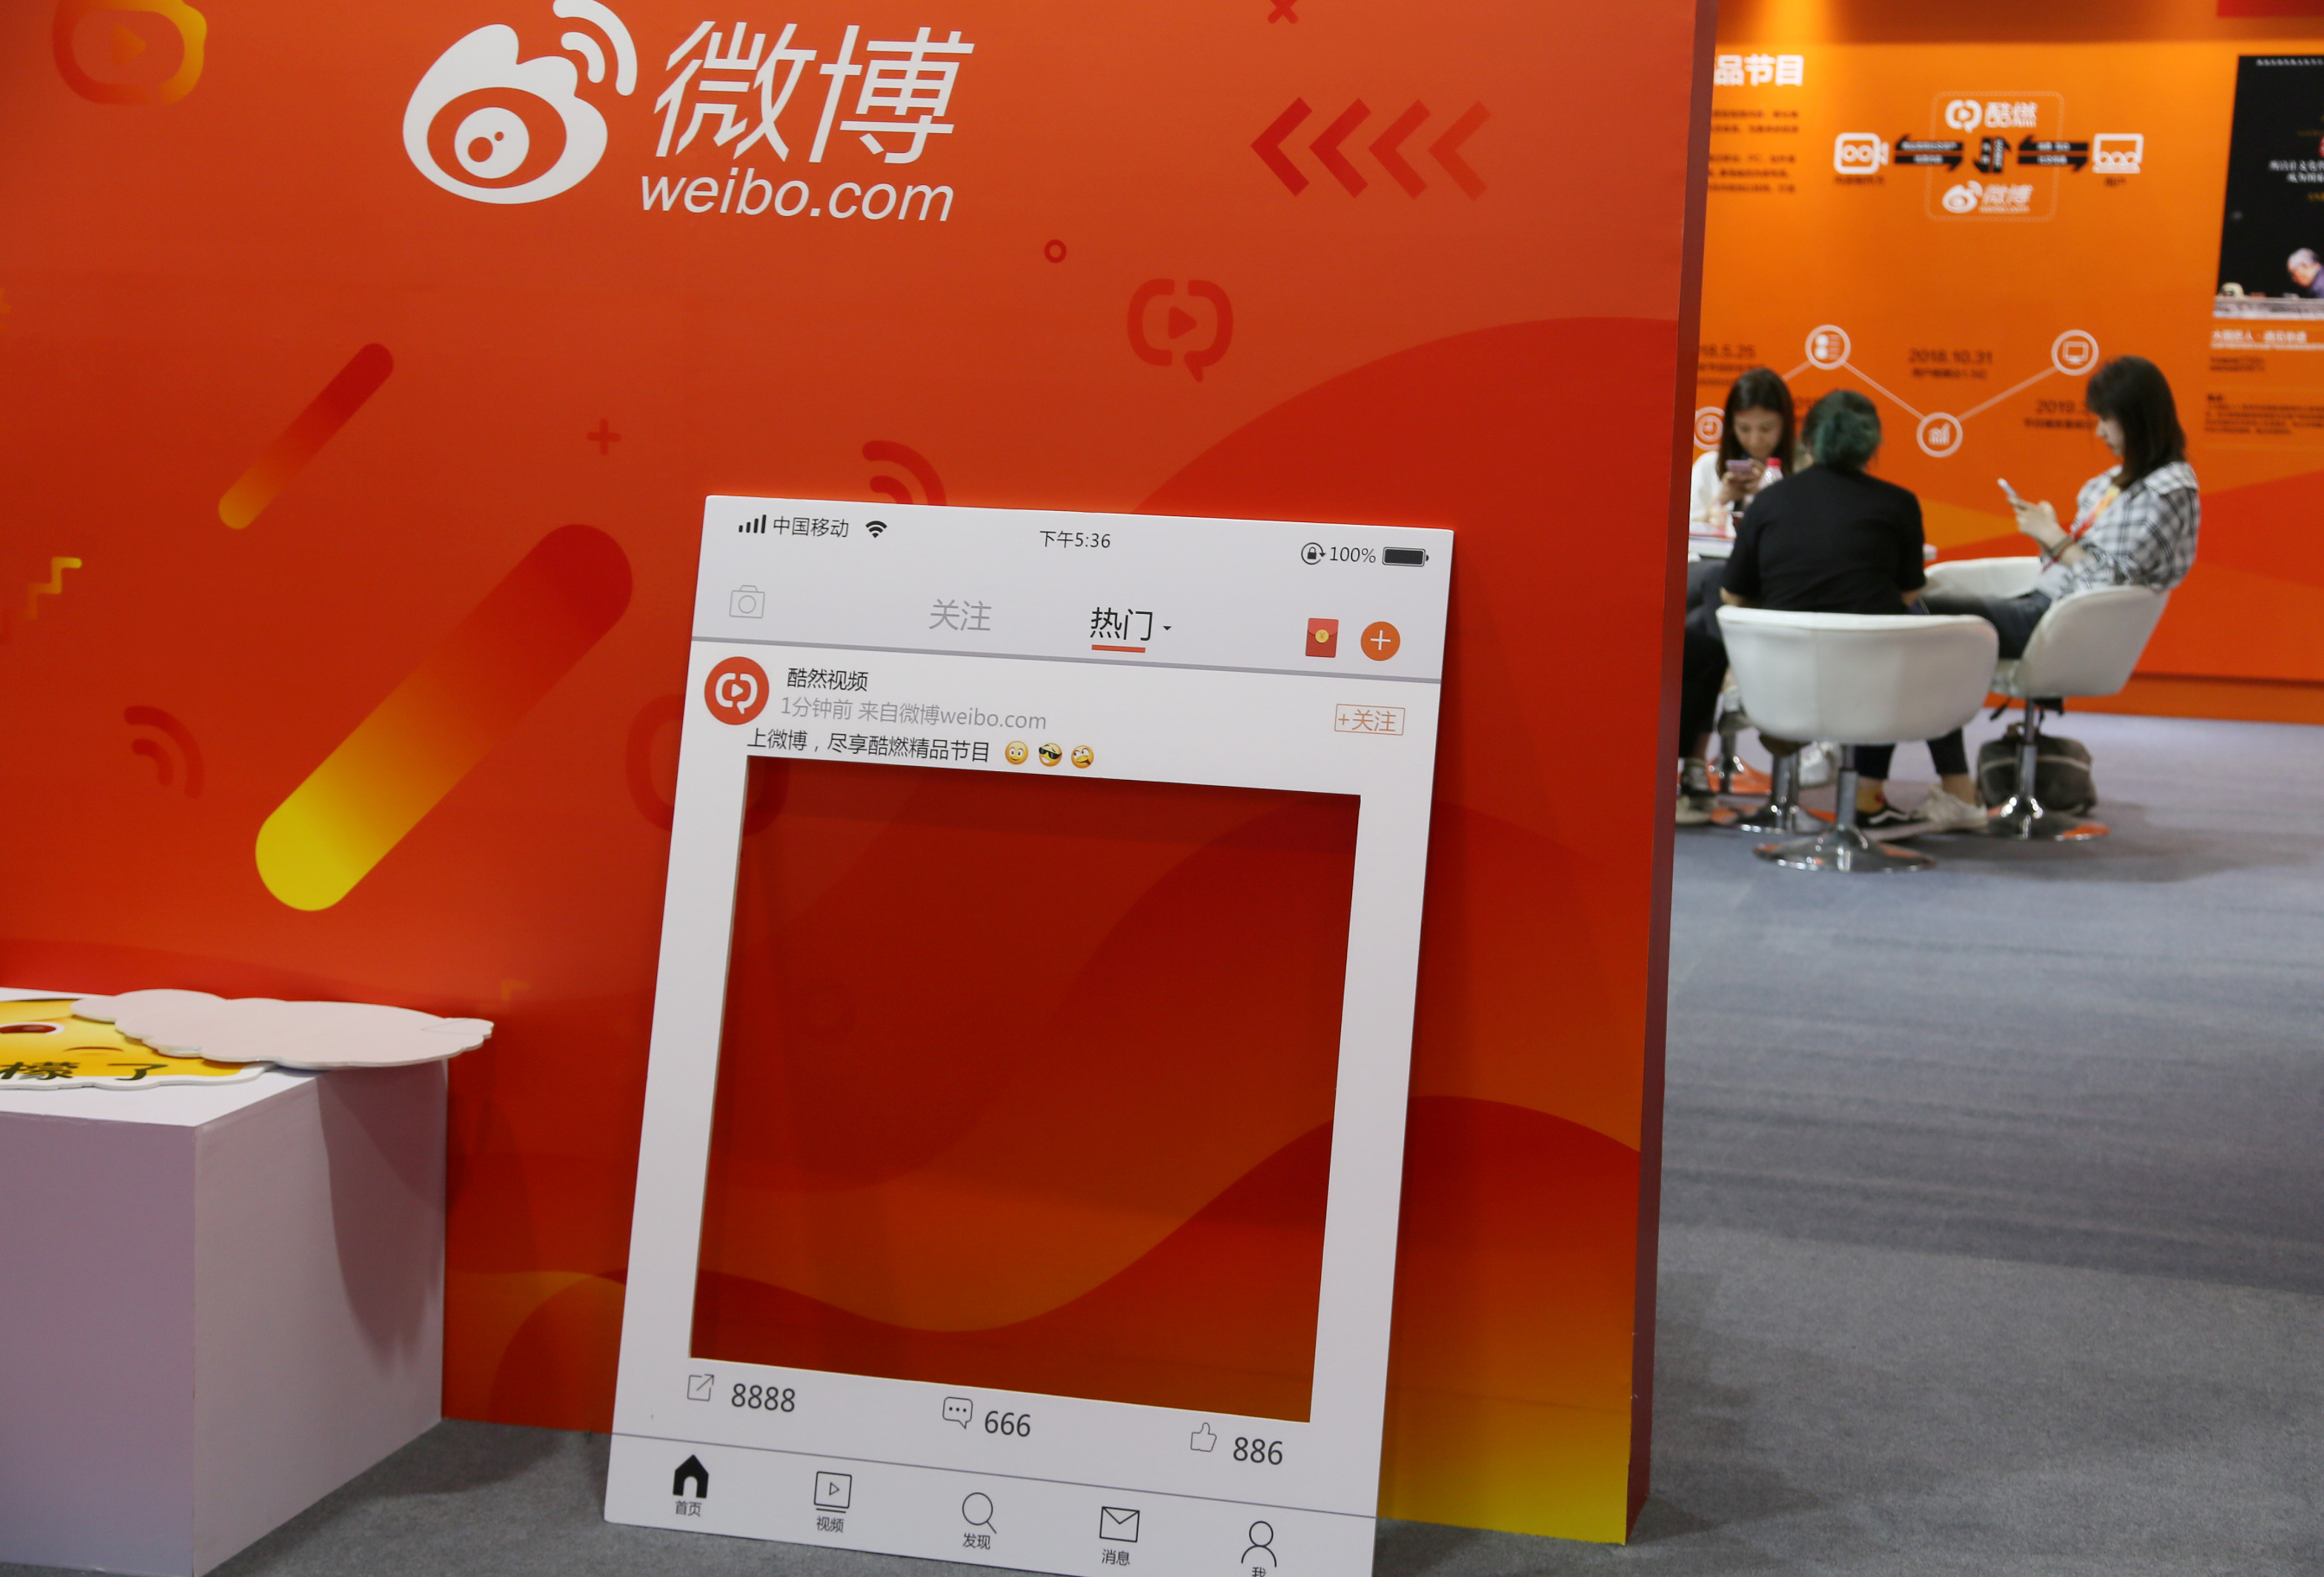 The booth of Sina Weibo is pictured at the Beijing International Cultural and Creative Industry Expo, in Beijing, China May 29, 2019. REUTERS/Stringer/Files